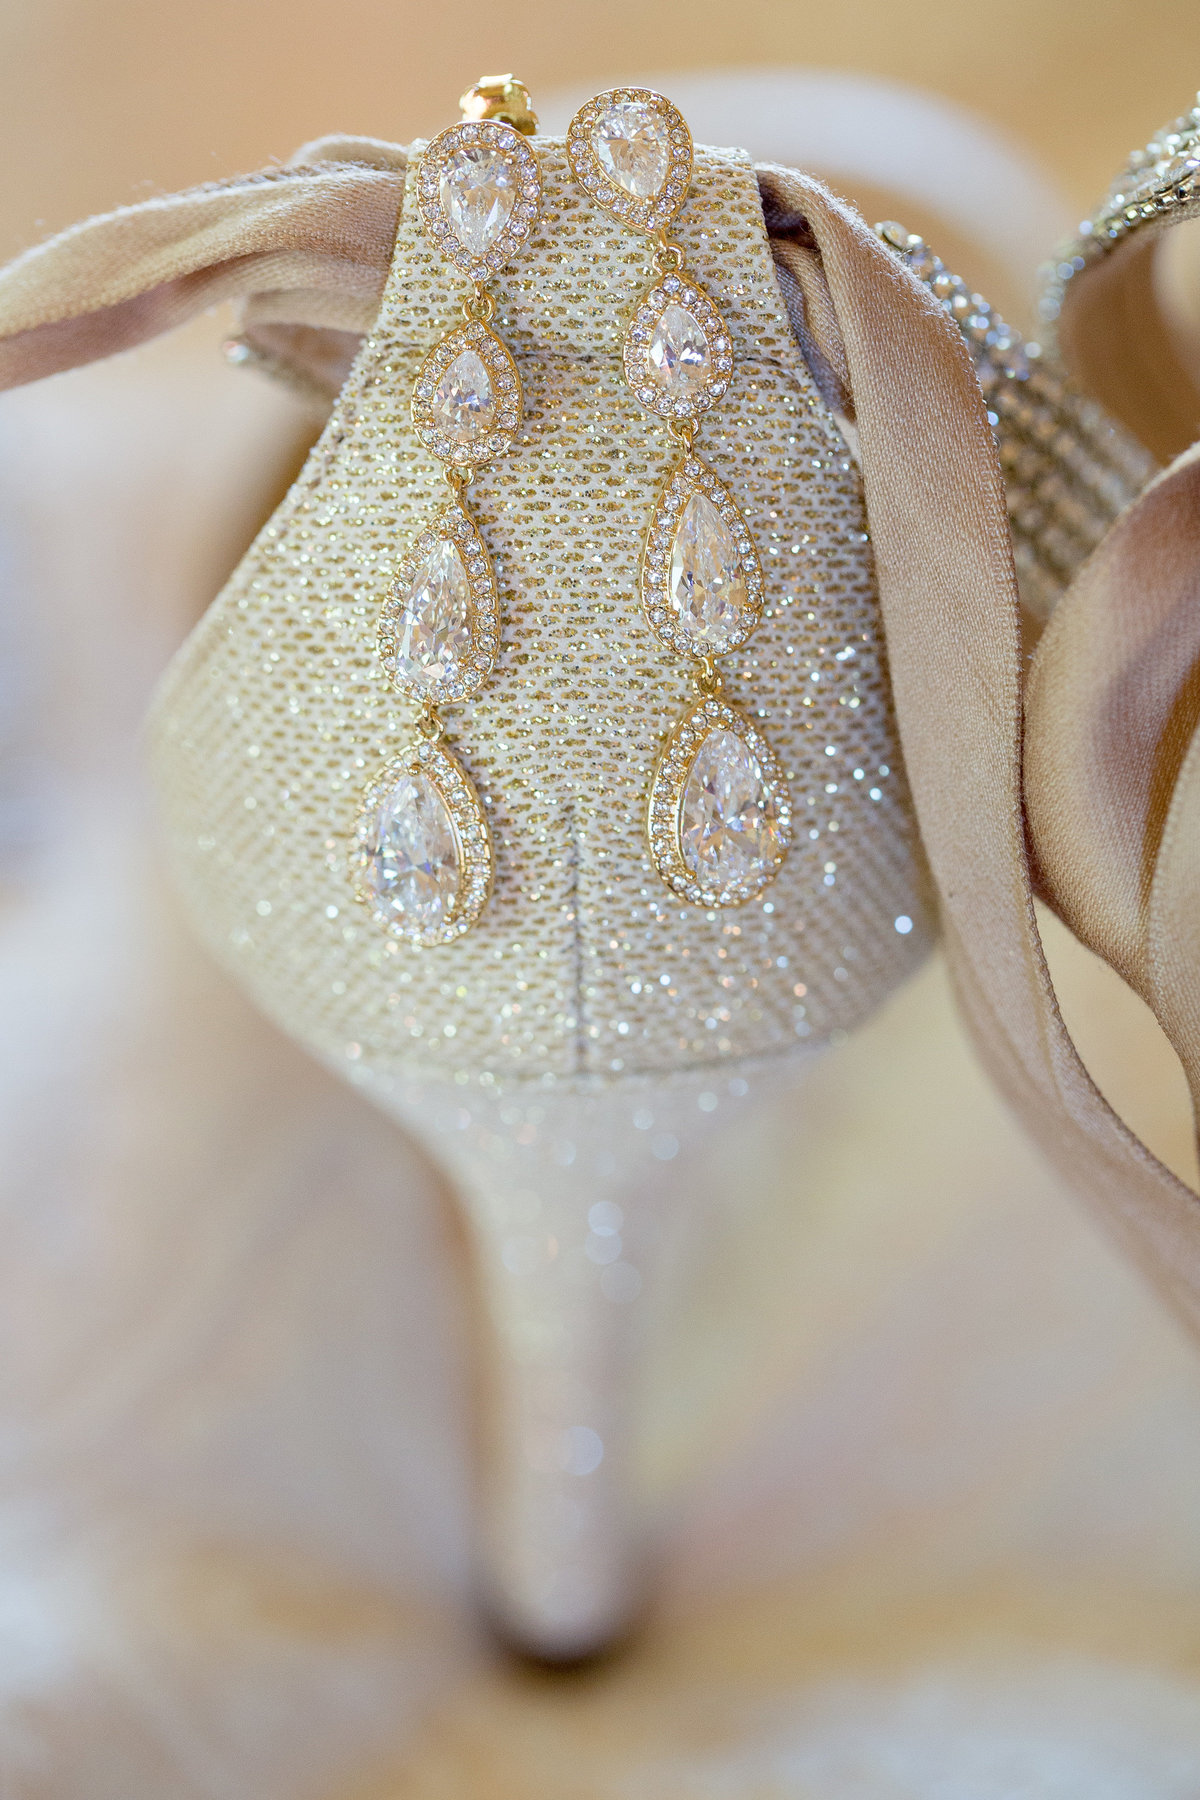 Wedding Shoes Beecher Hill Lynette Smith Photography